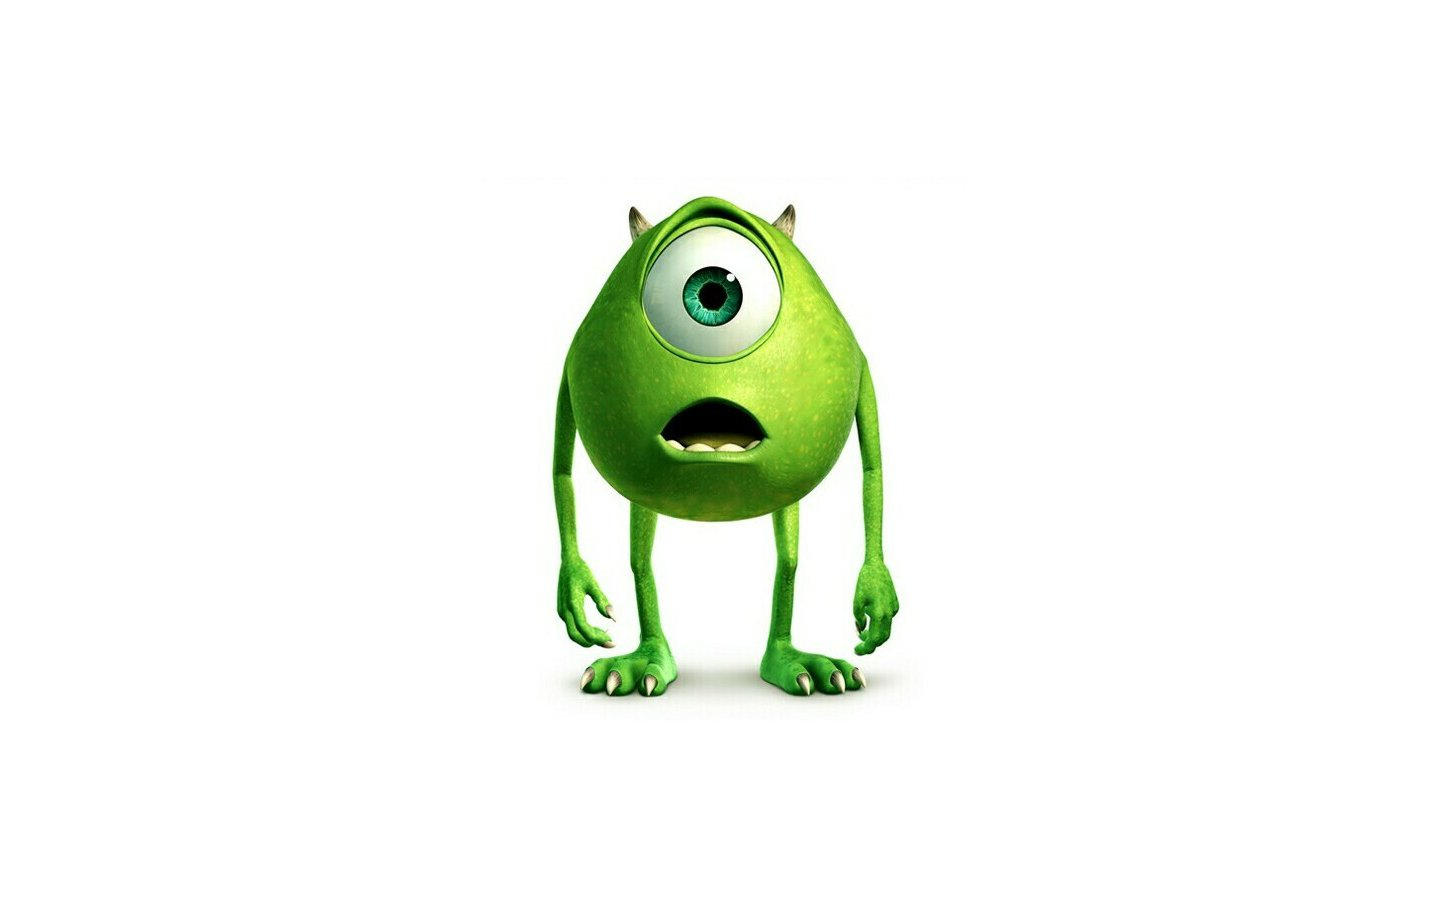 Monster Inc Wallpaper Iphone 6 Monsters Inc Wallpapers High Quality Download Free